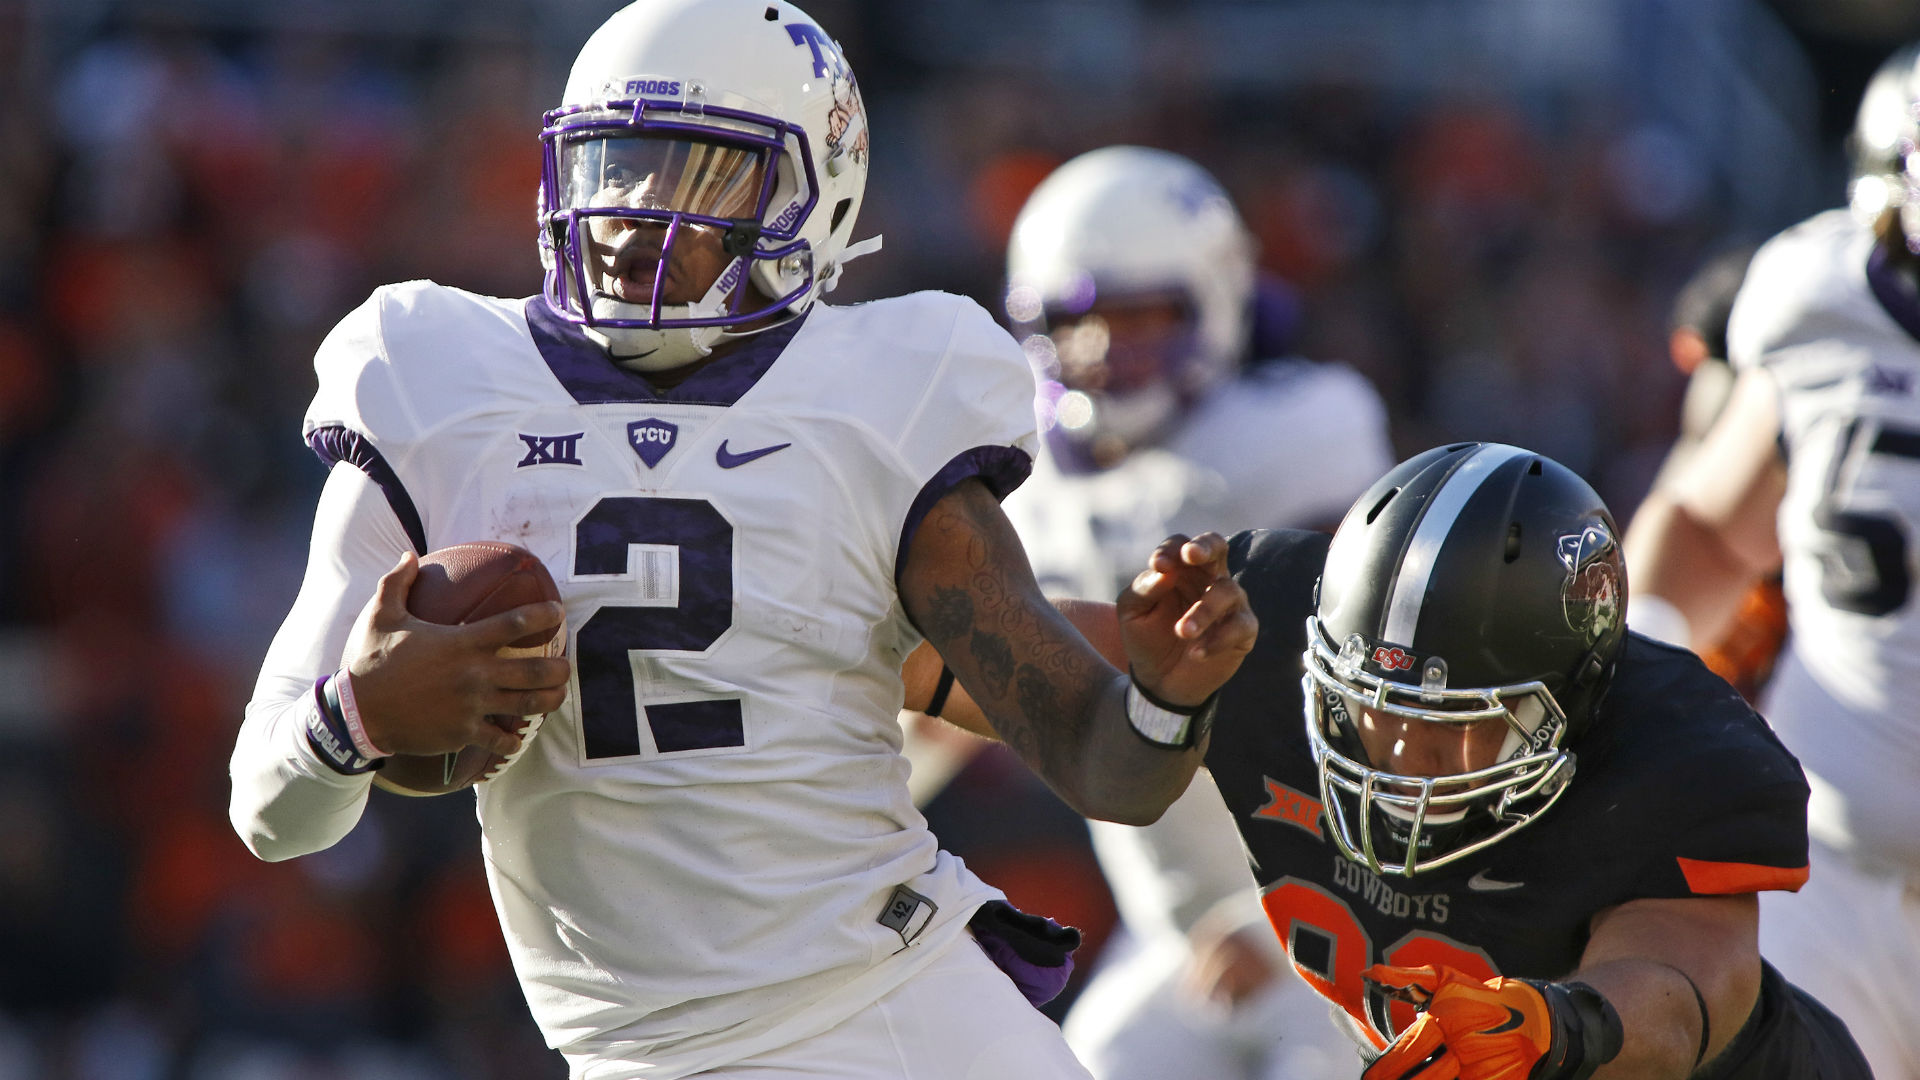 Baylor at TCU betting line and pick – Horned Frogs adjusted to short favorites